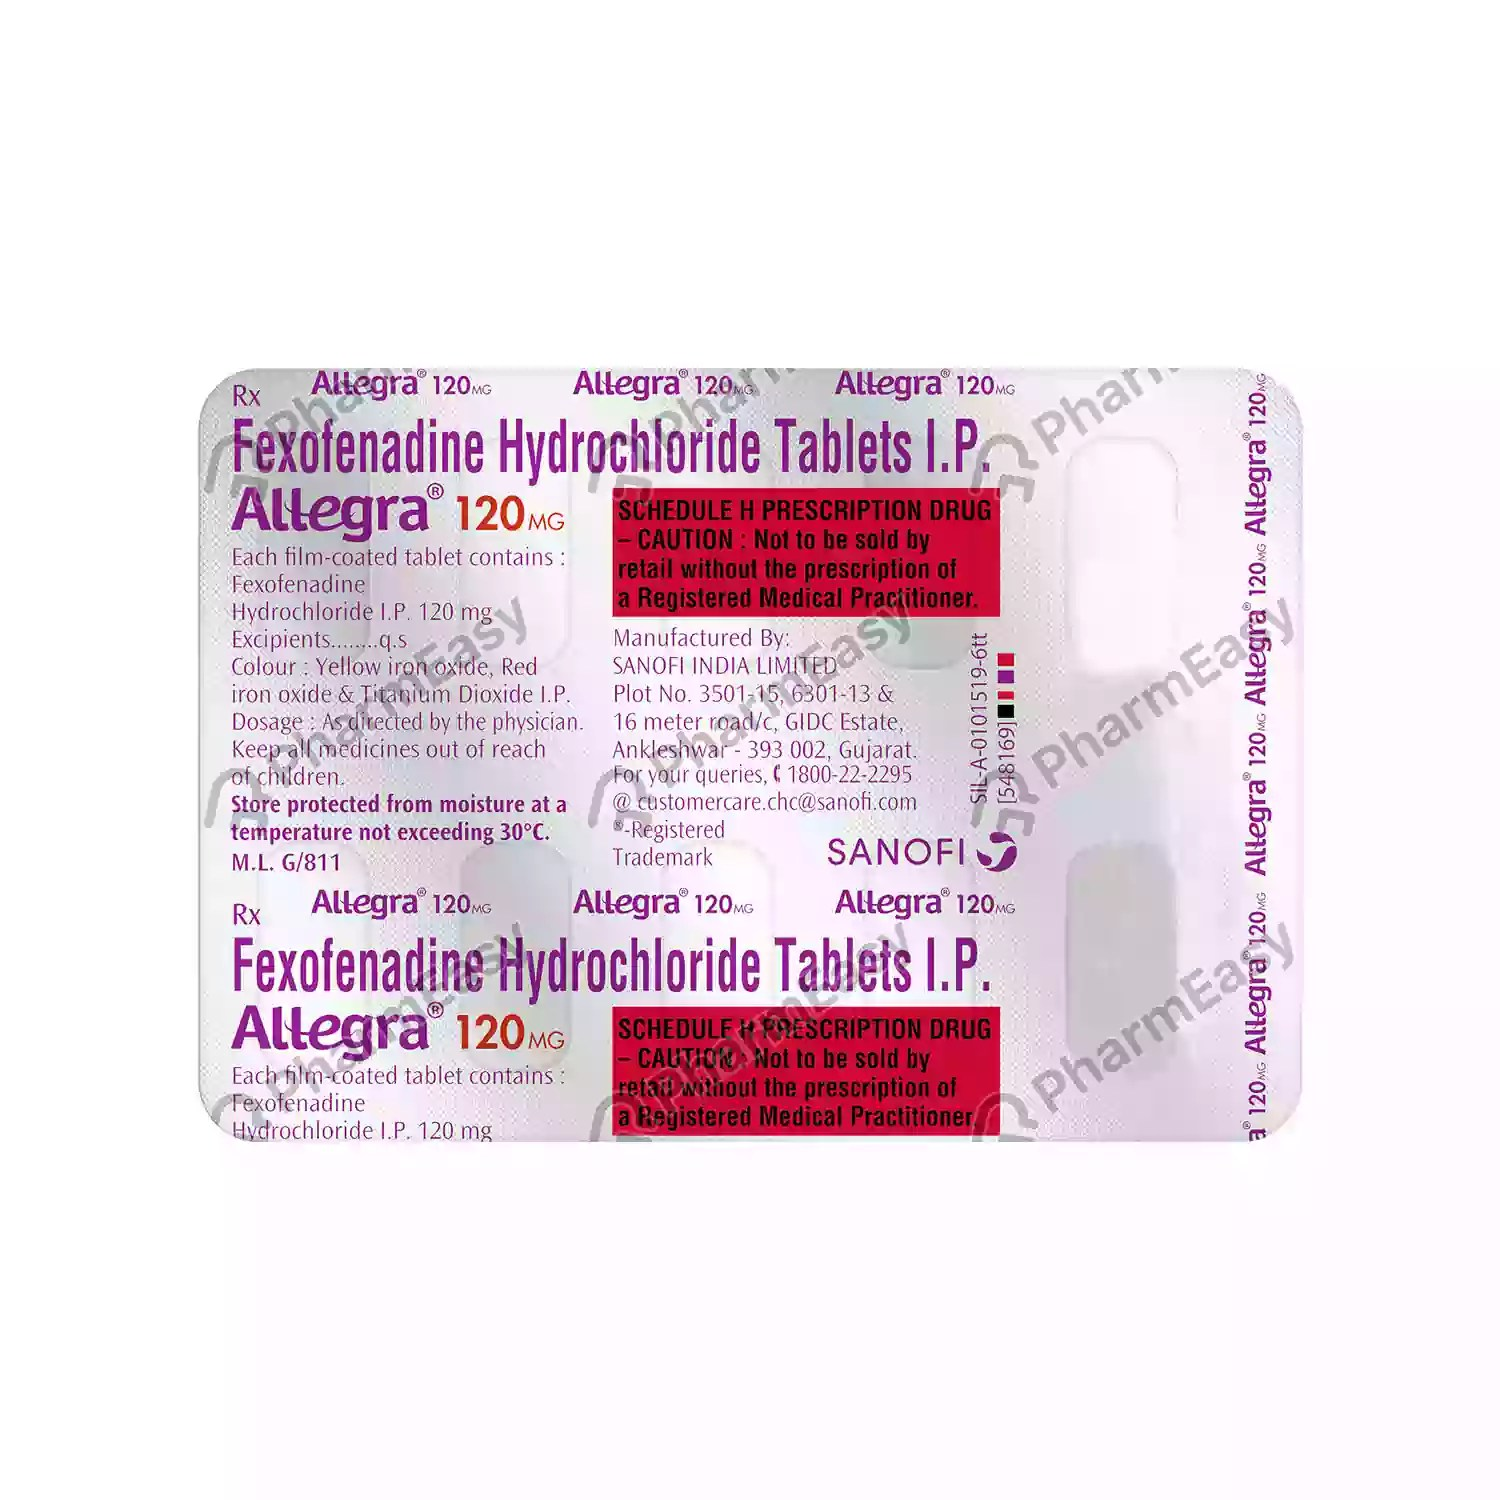 Allegra 120mg Tab - Uses. Side Effects. Dosage. Composition & Price | PharmEasy